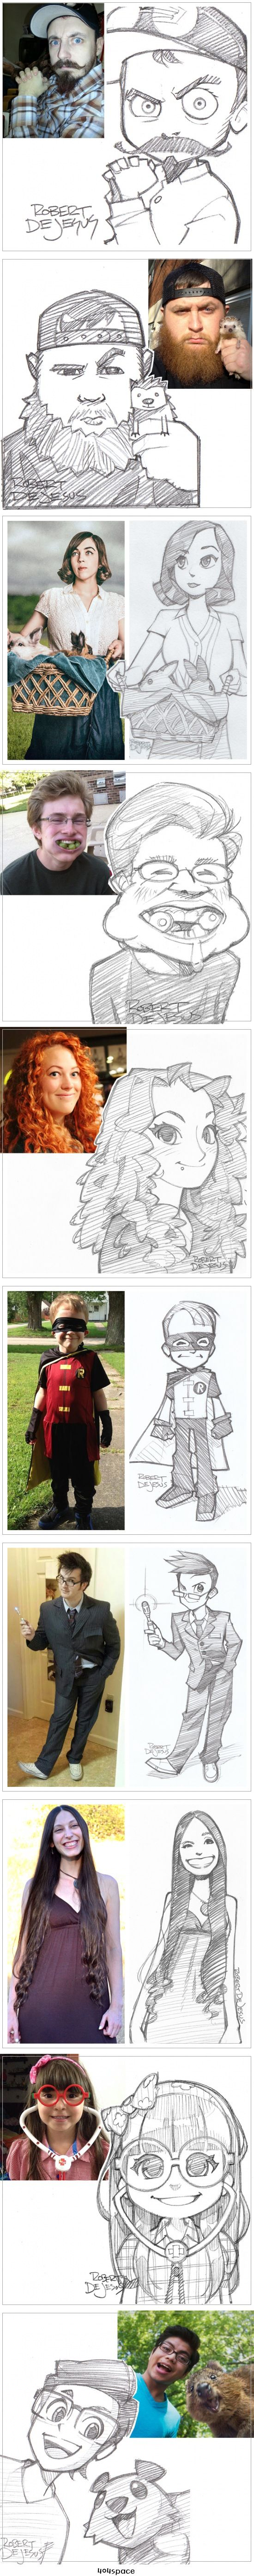 Creative Artist Robert DeJesus Turns Strangers' Photographs Into Anime-Inspired Sketches